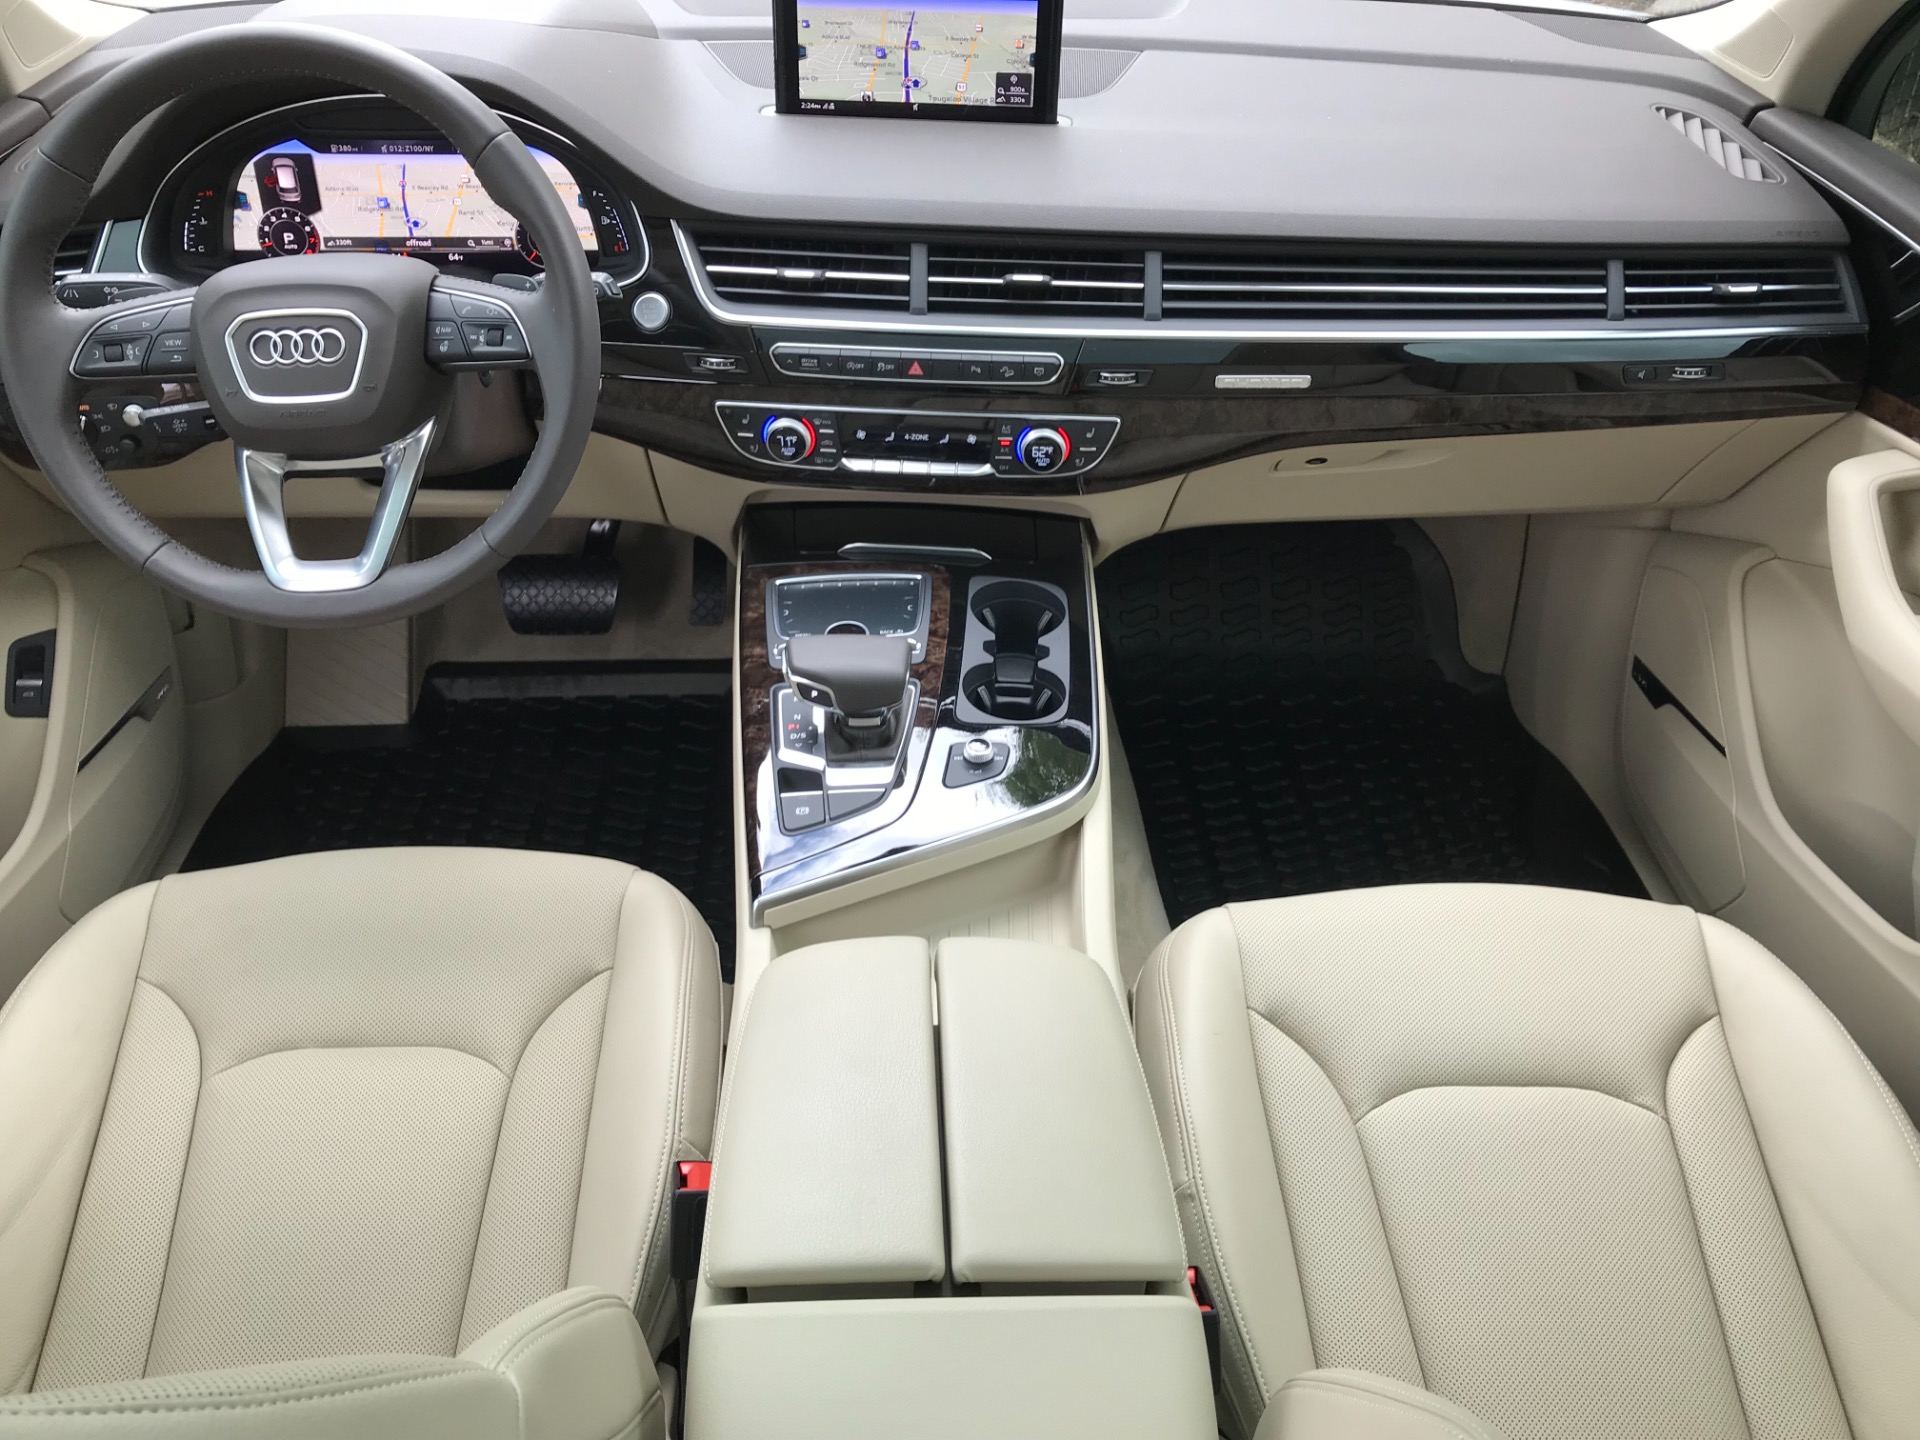 Garage Audi Tours 2018 Audi Q7 Prestige Stock Cjd018786 For Sale Near Jackson Ms